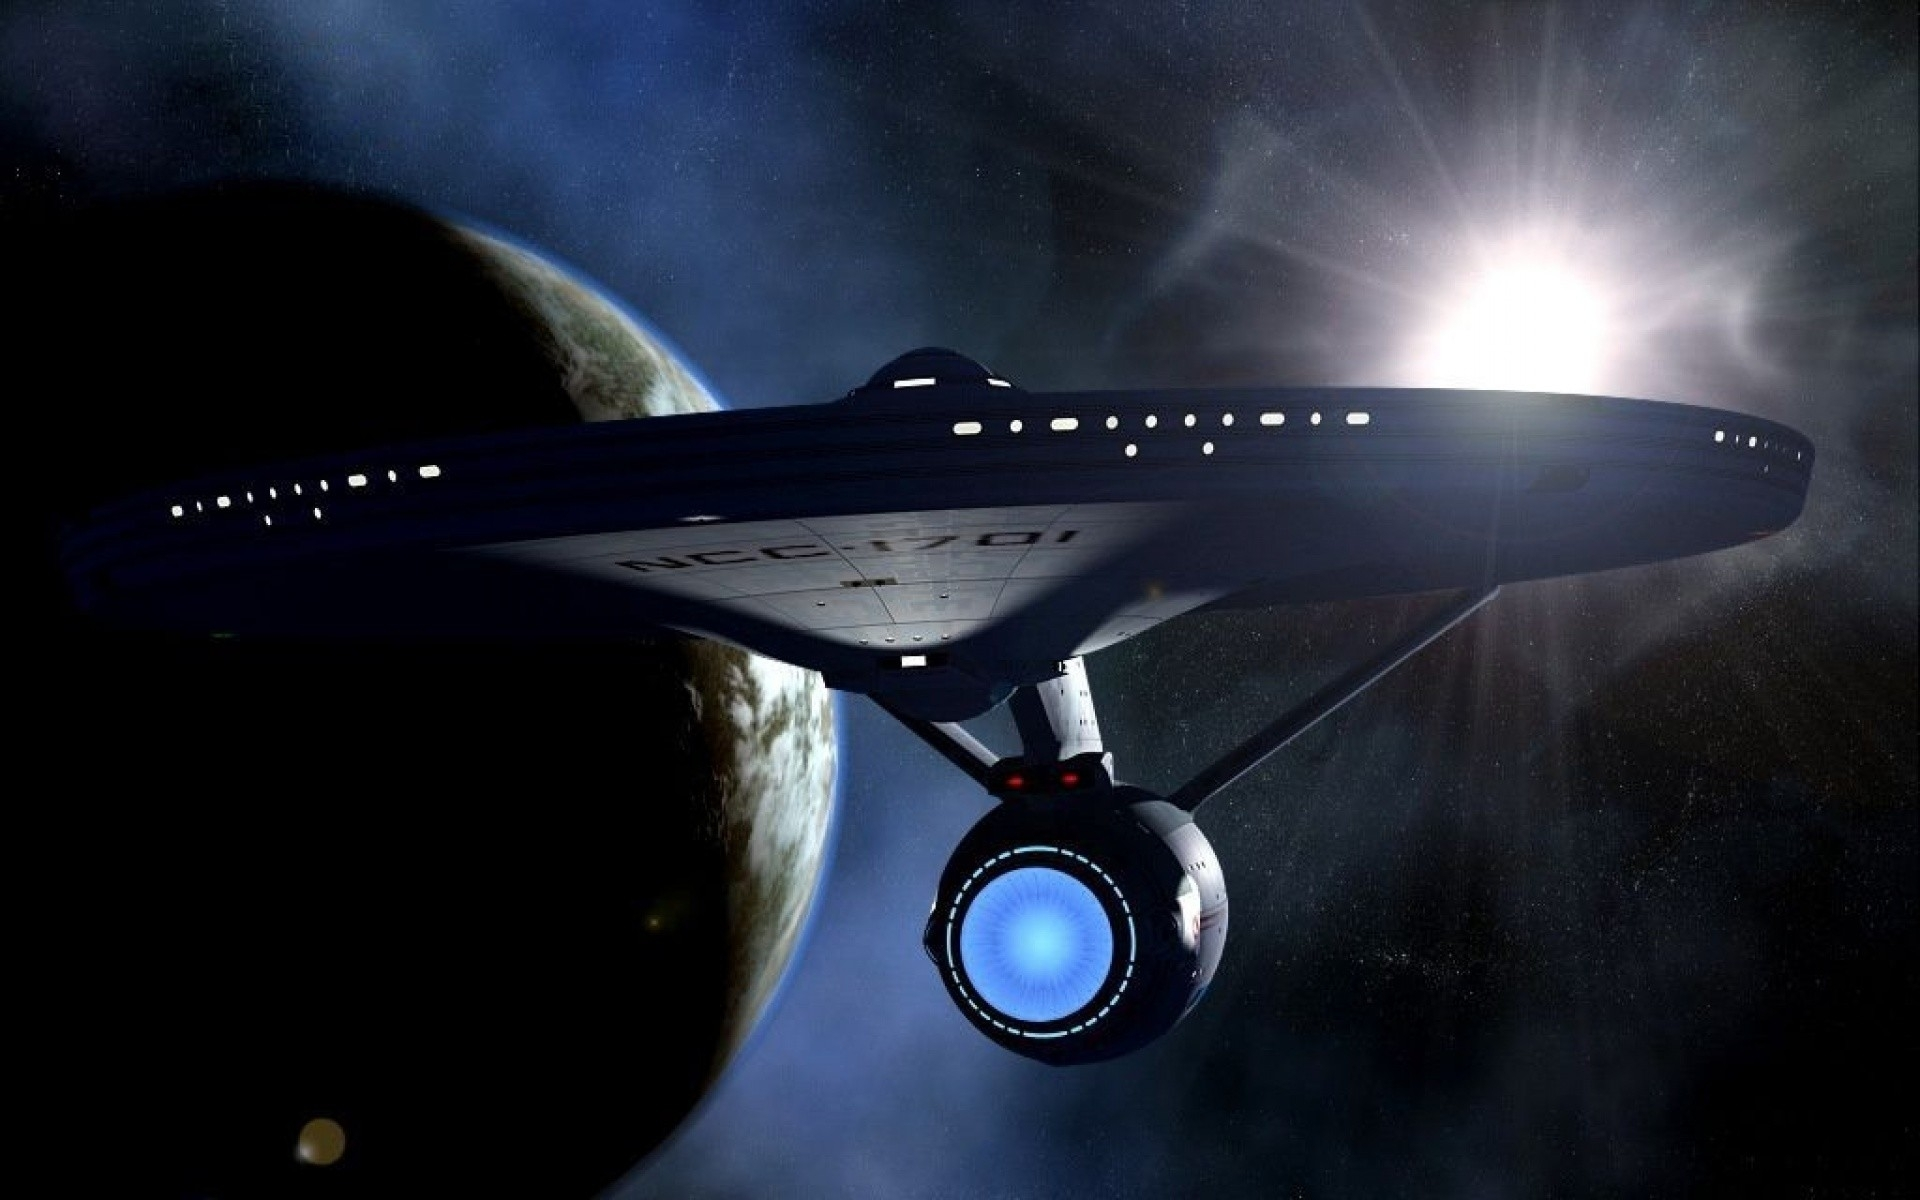 star trek wallpaper android (71+ images)